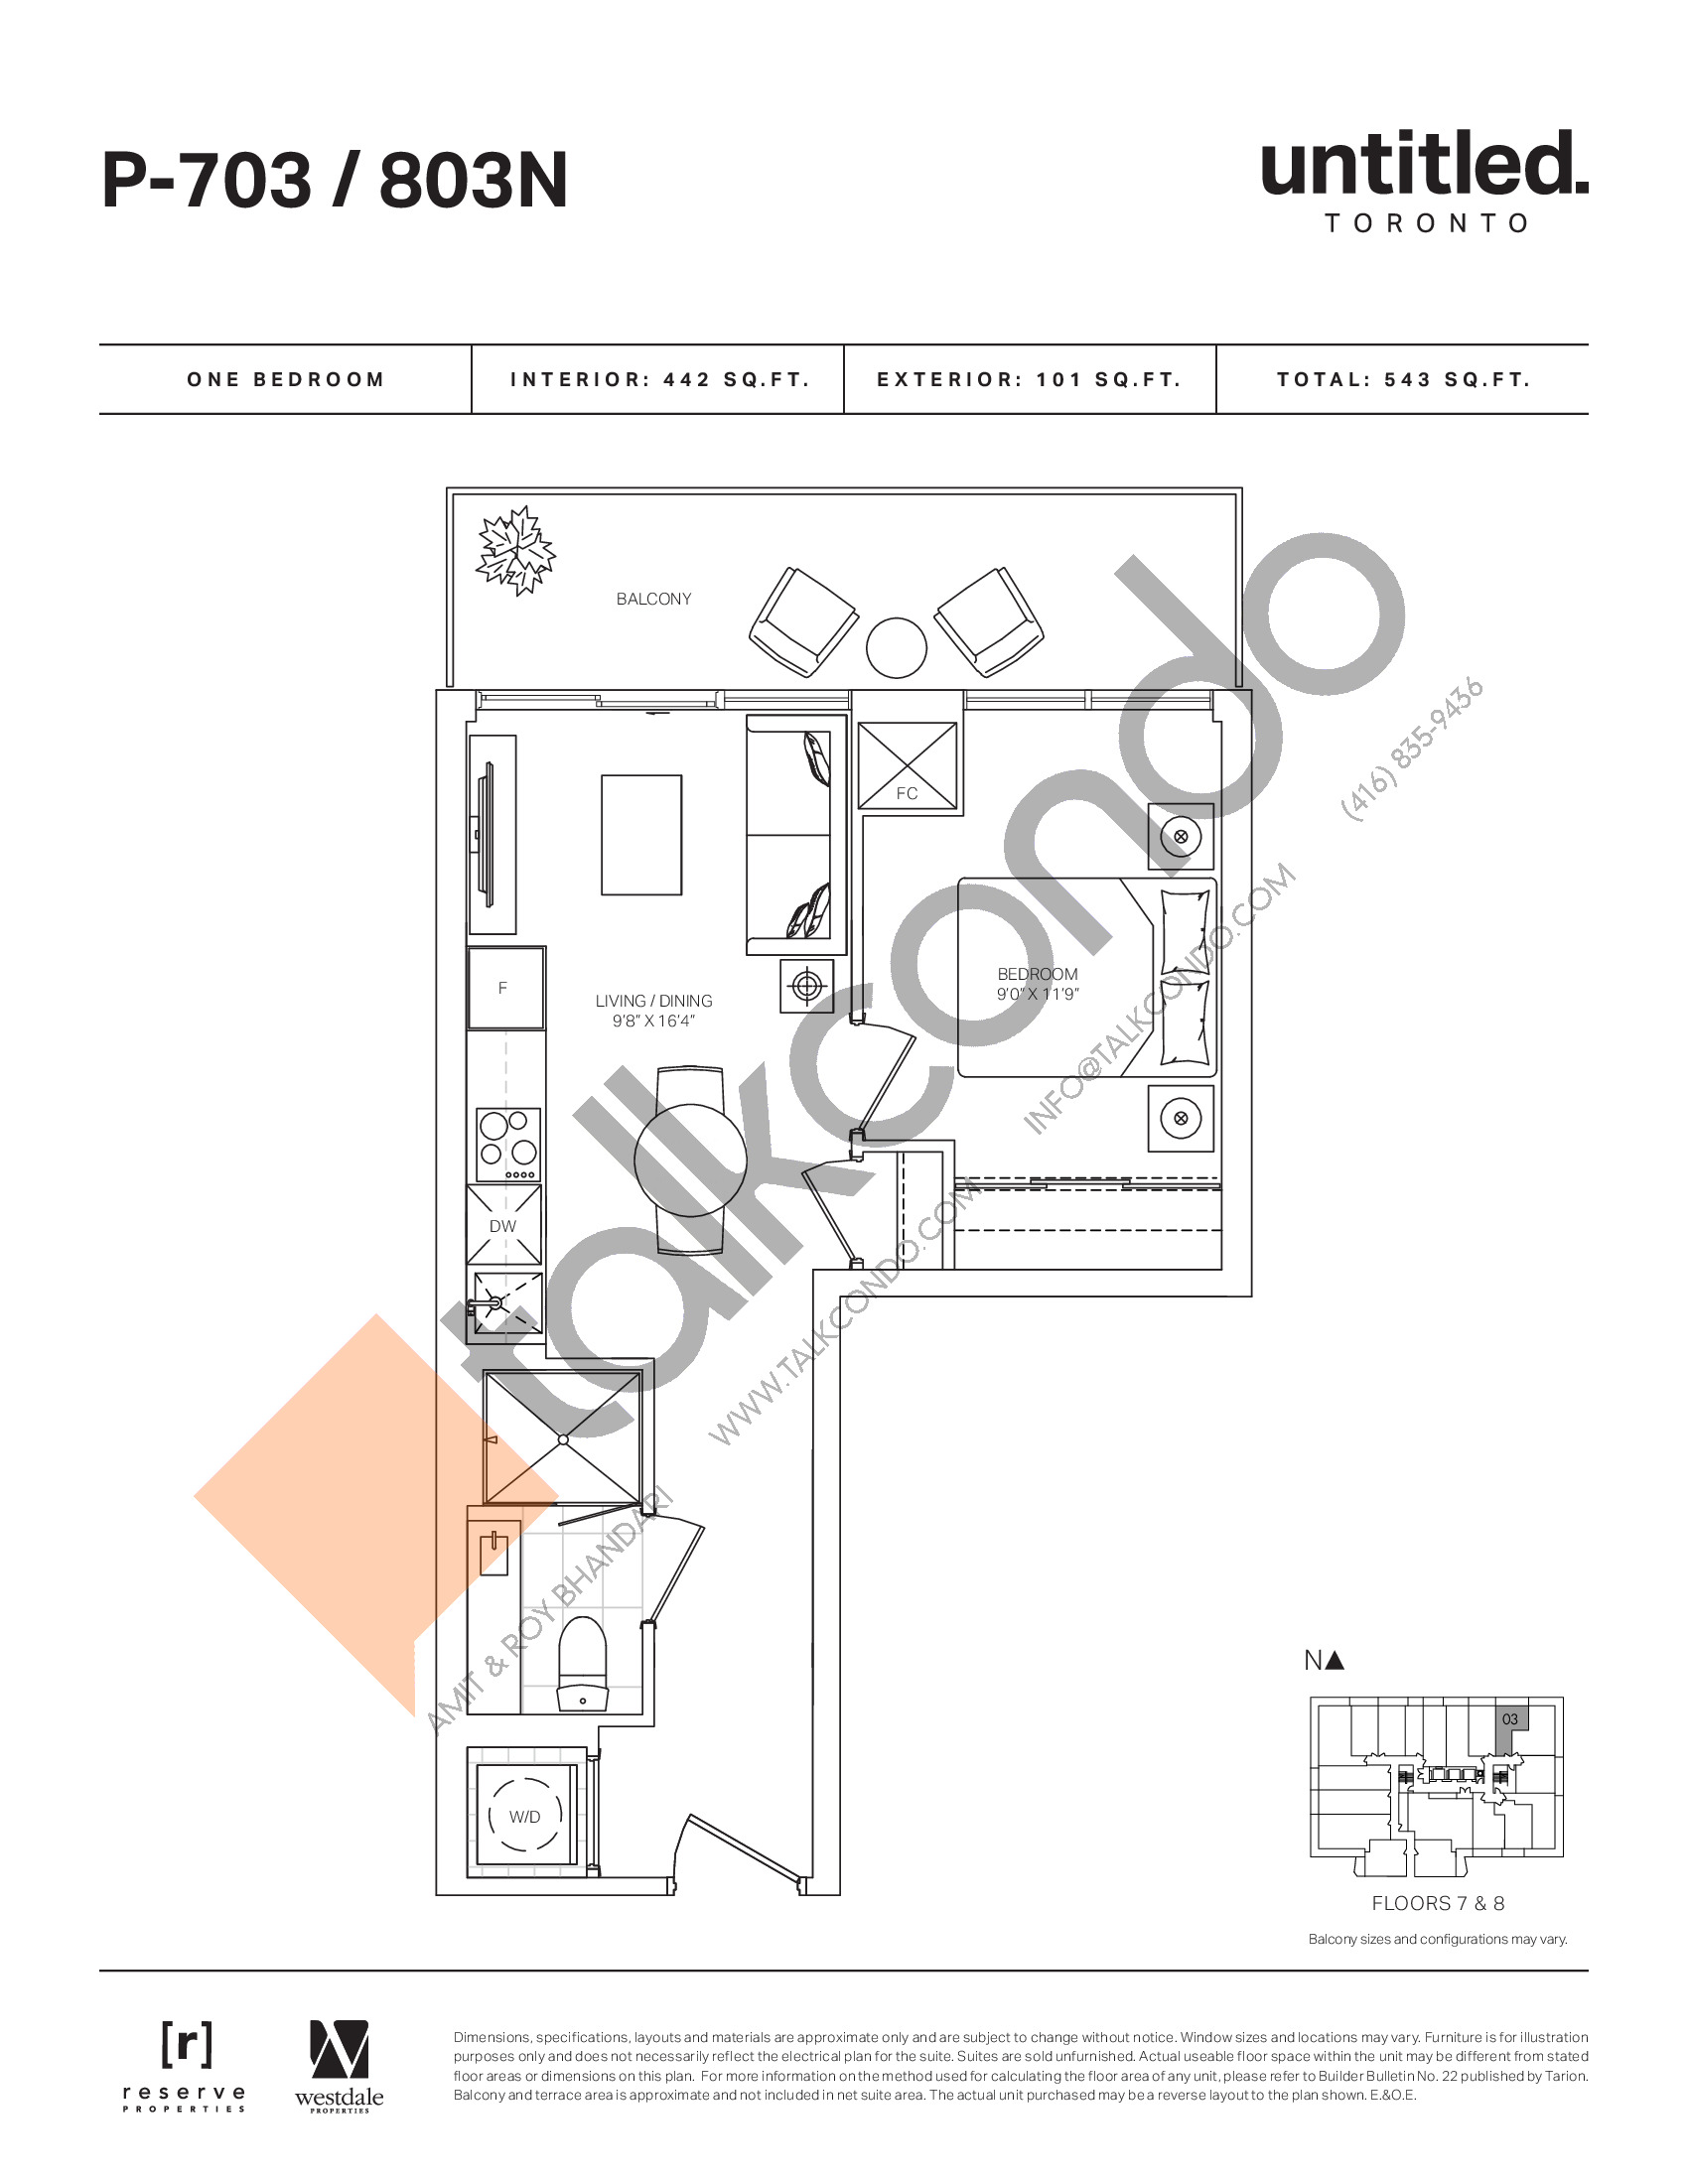 P-703 / 803N Floor Plan at Untitled North Tower Condos - 442 sq.ft